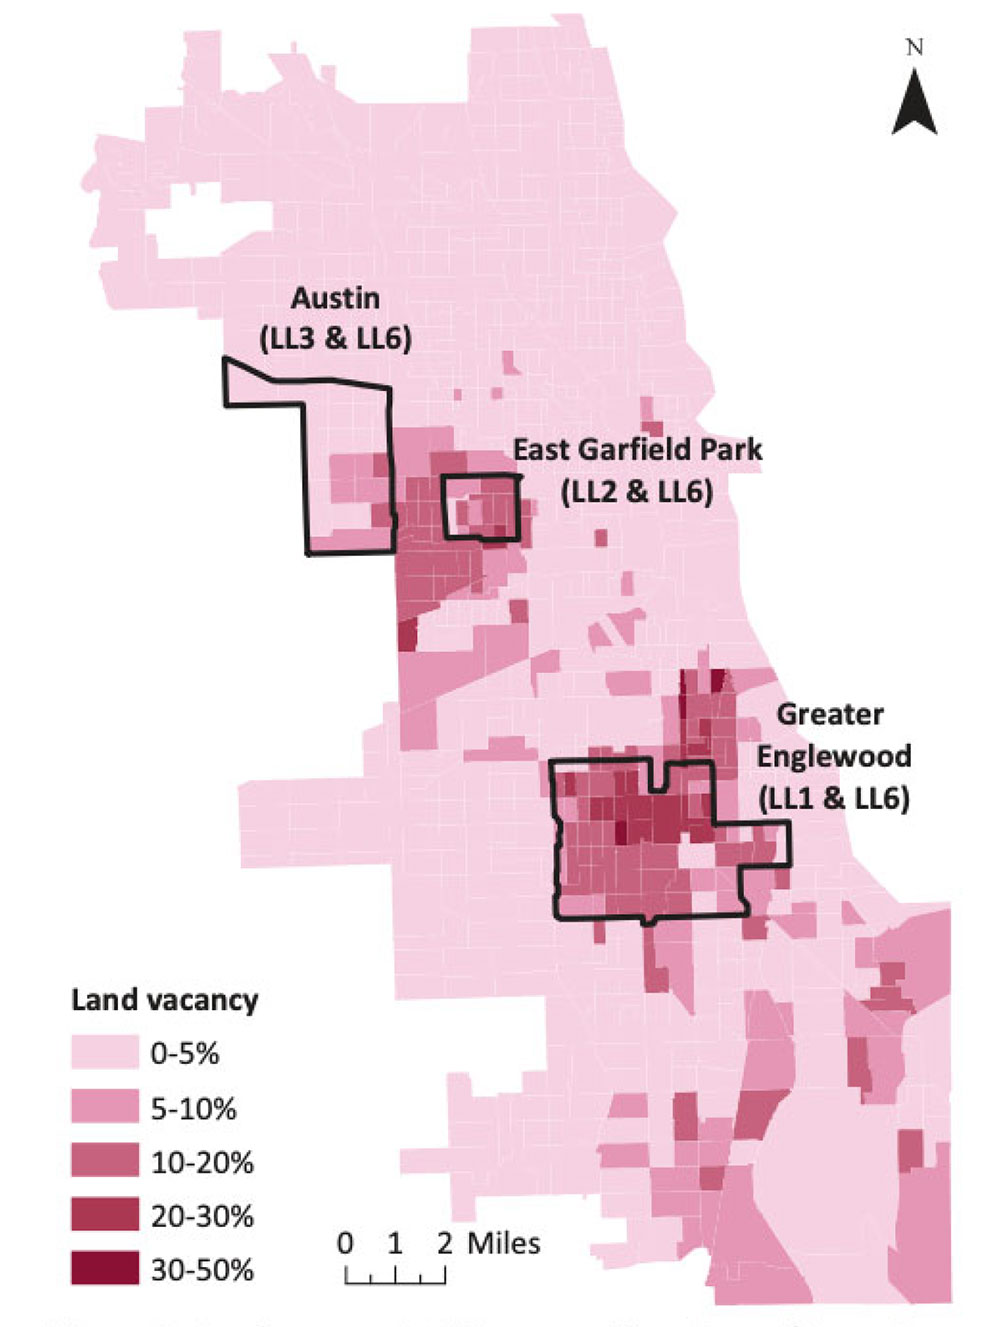 """Land vacancy in Chicago and the areas chosen for the study. From """"Chicago Sells Vacant Parcels For $1 and Nets Crime Reduction"""" in the Journal of the American Planning Association (Vol. 87, No. 2)."""